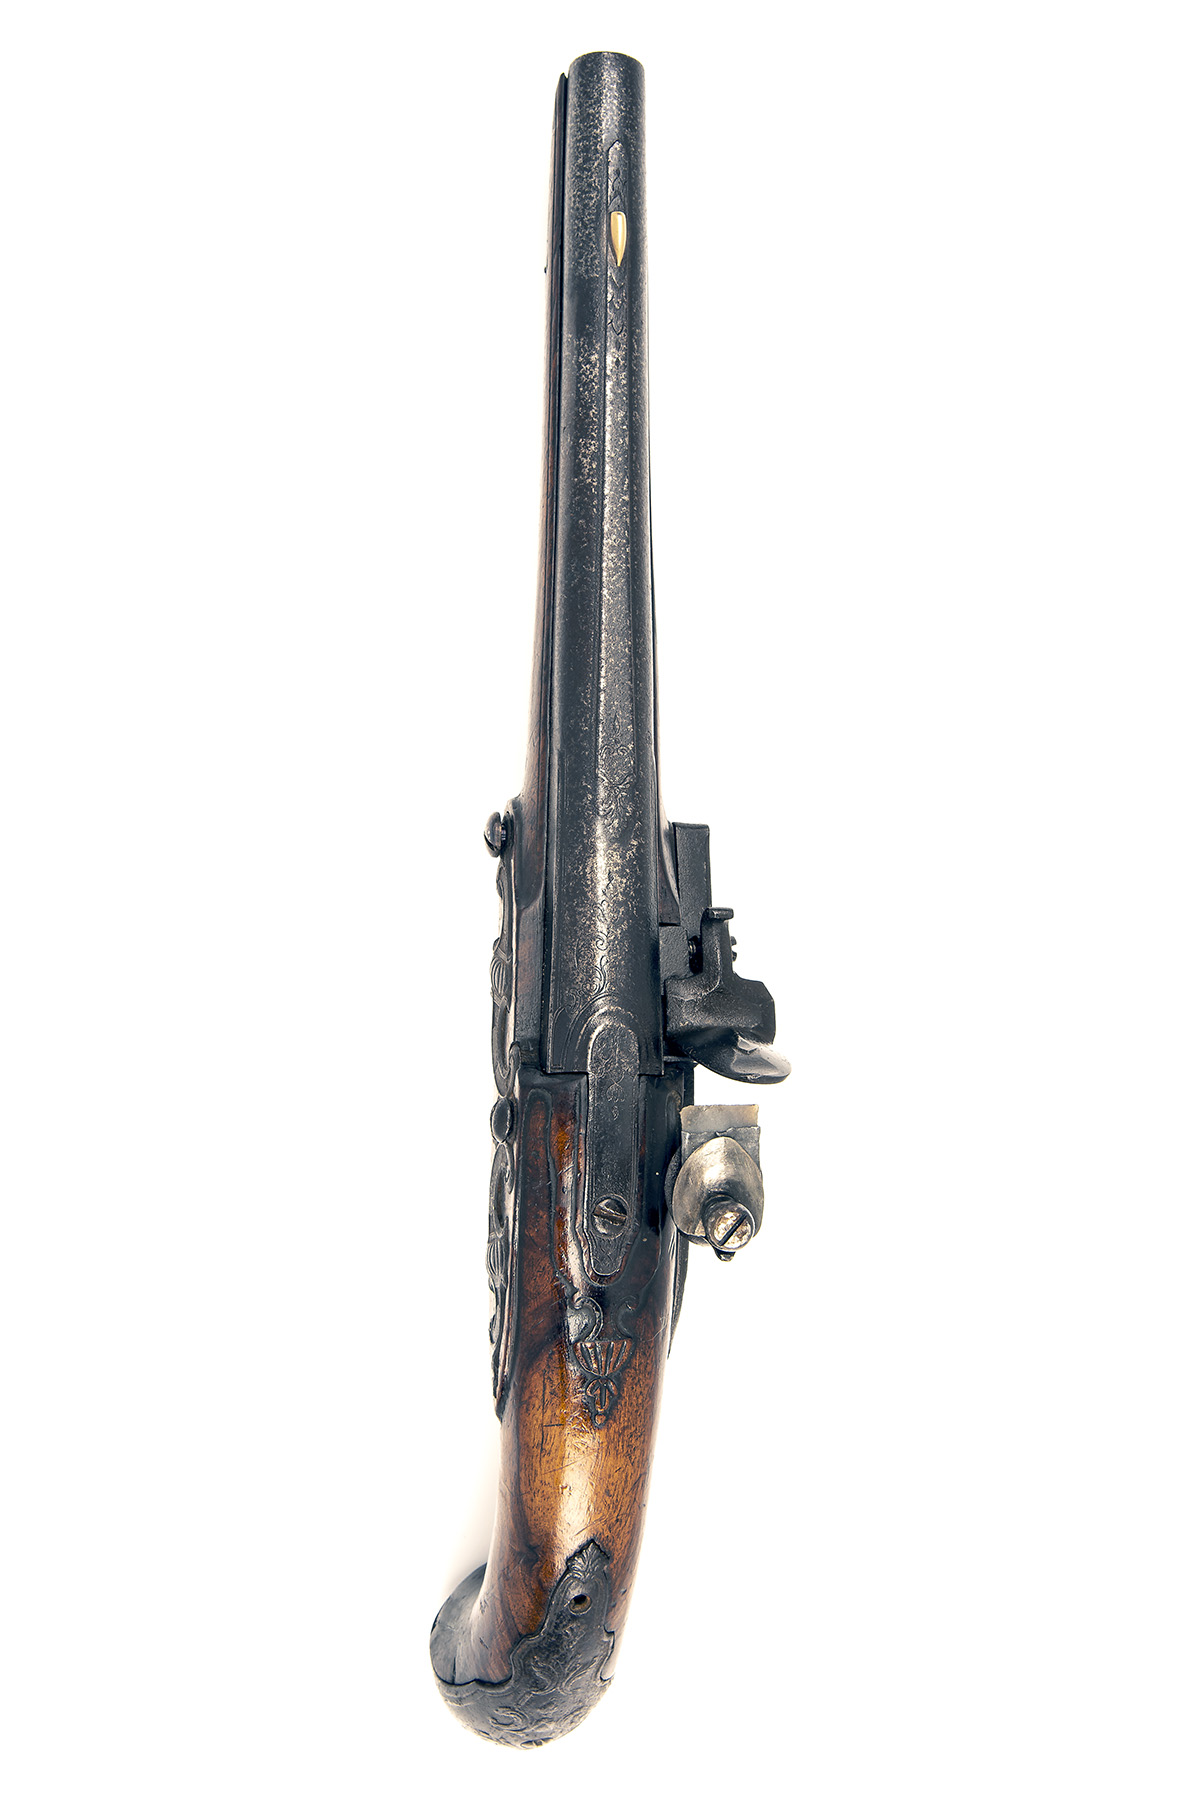 A 22-BORE FLINTLOCK HORSE-PISTOL, UNSIGNED, no visible serial number, German or Bohemian circa 1775, - Image 4 of 7